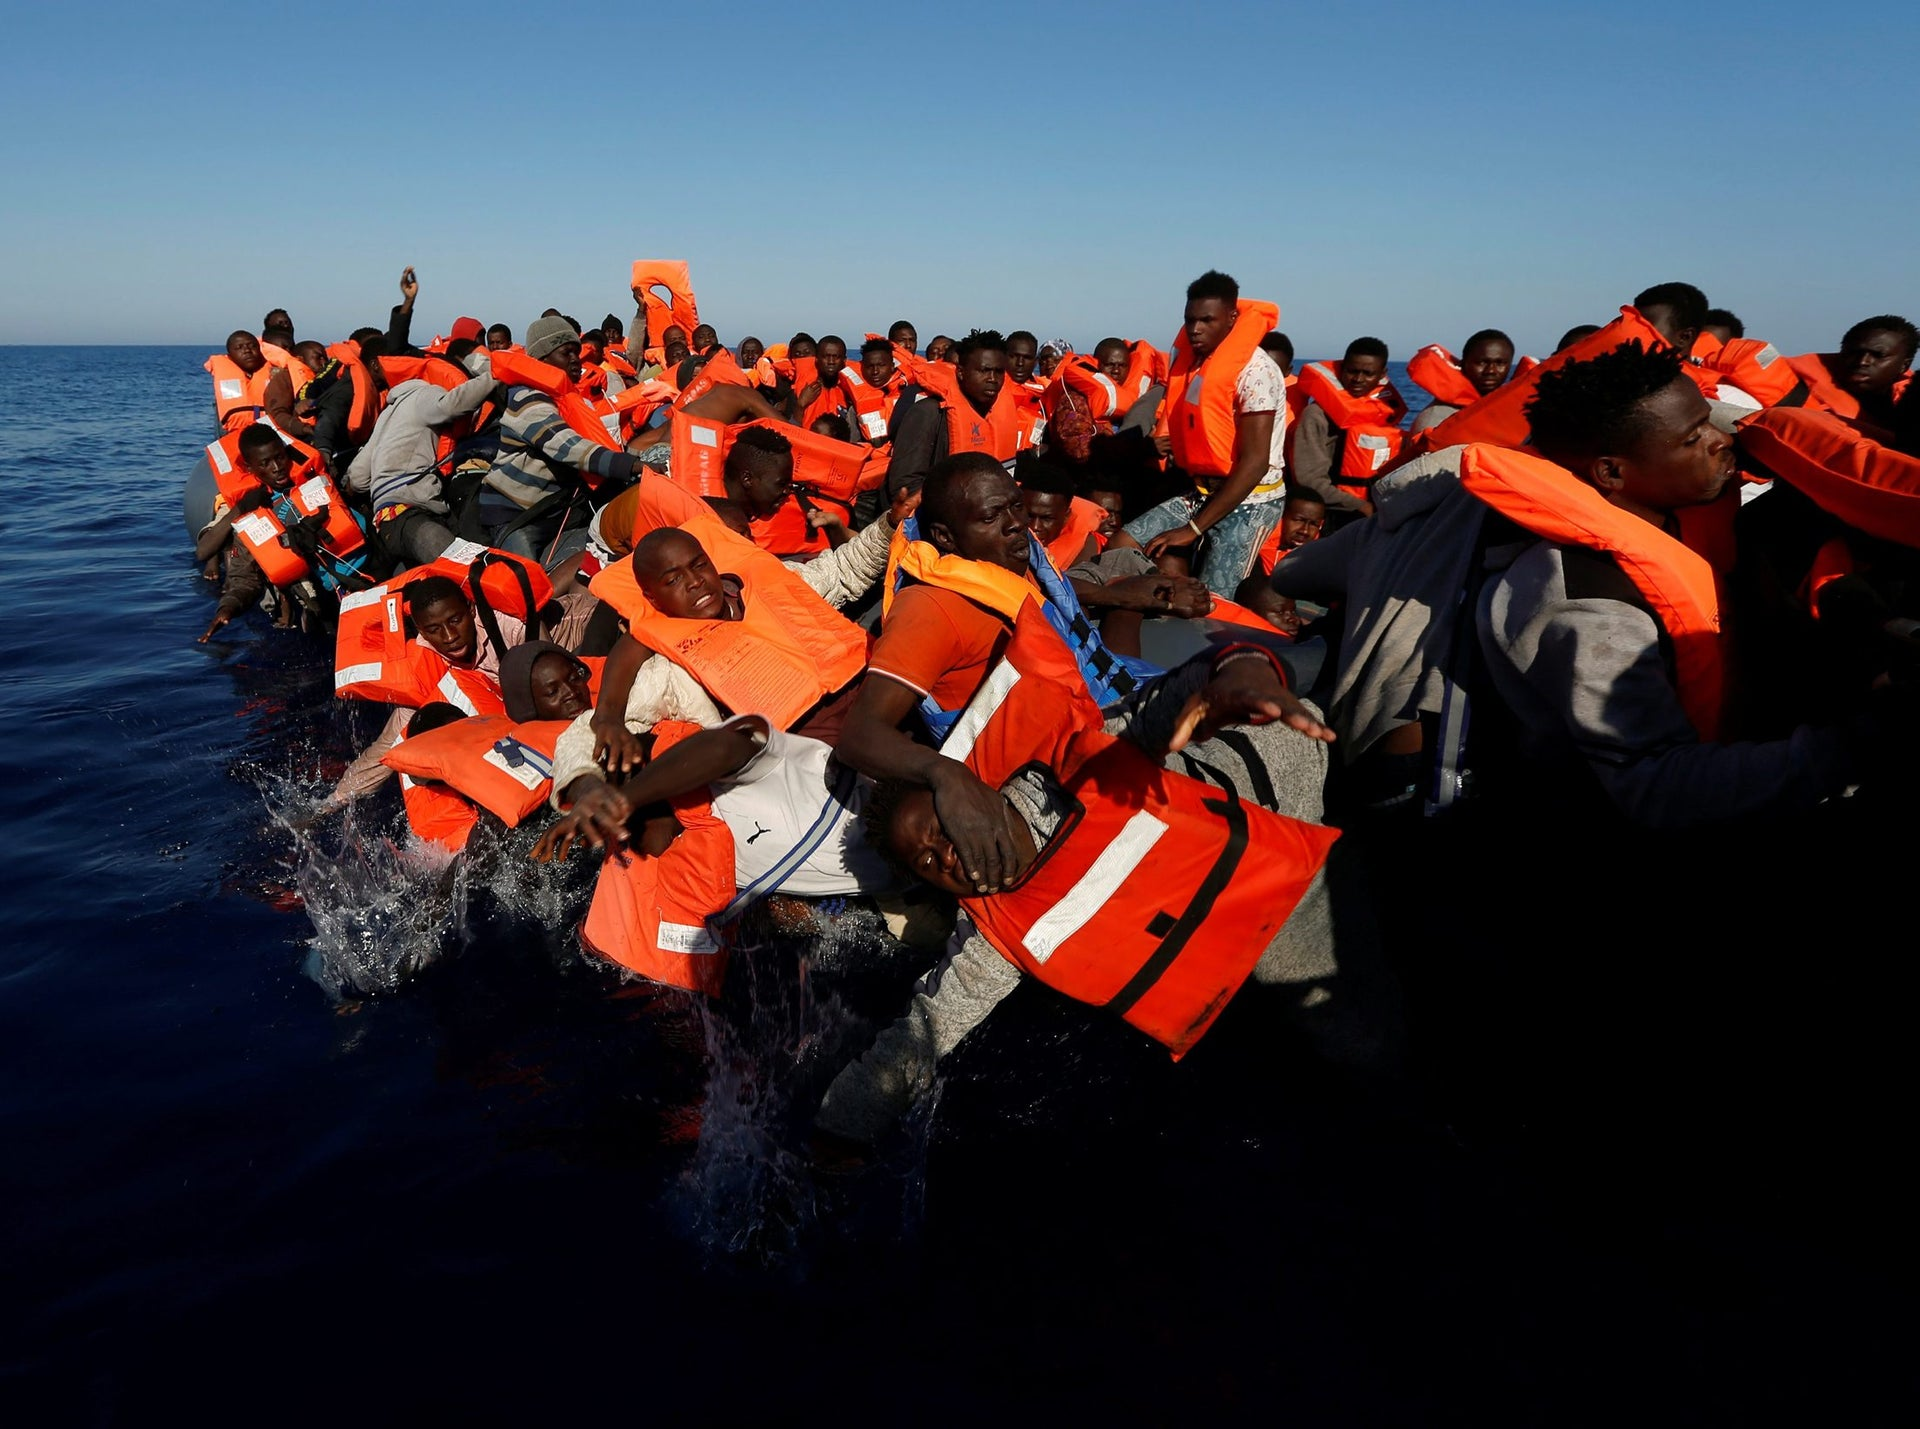 Migrants fall off their rubber dinghy during a rescue operation by the Malta-based NGO Migrant Offshore Aid Station (MOAS) ship in the central Mediterranean in international waters some 15 nautical miles off the coast of Zawiya in Libya, April 14